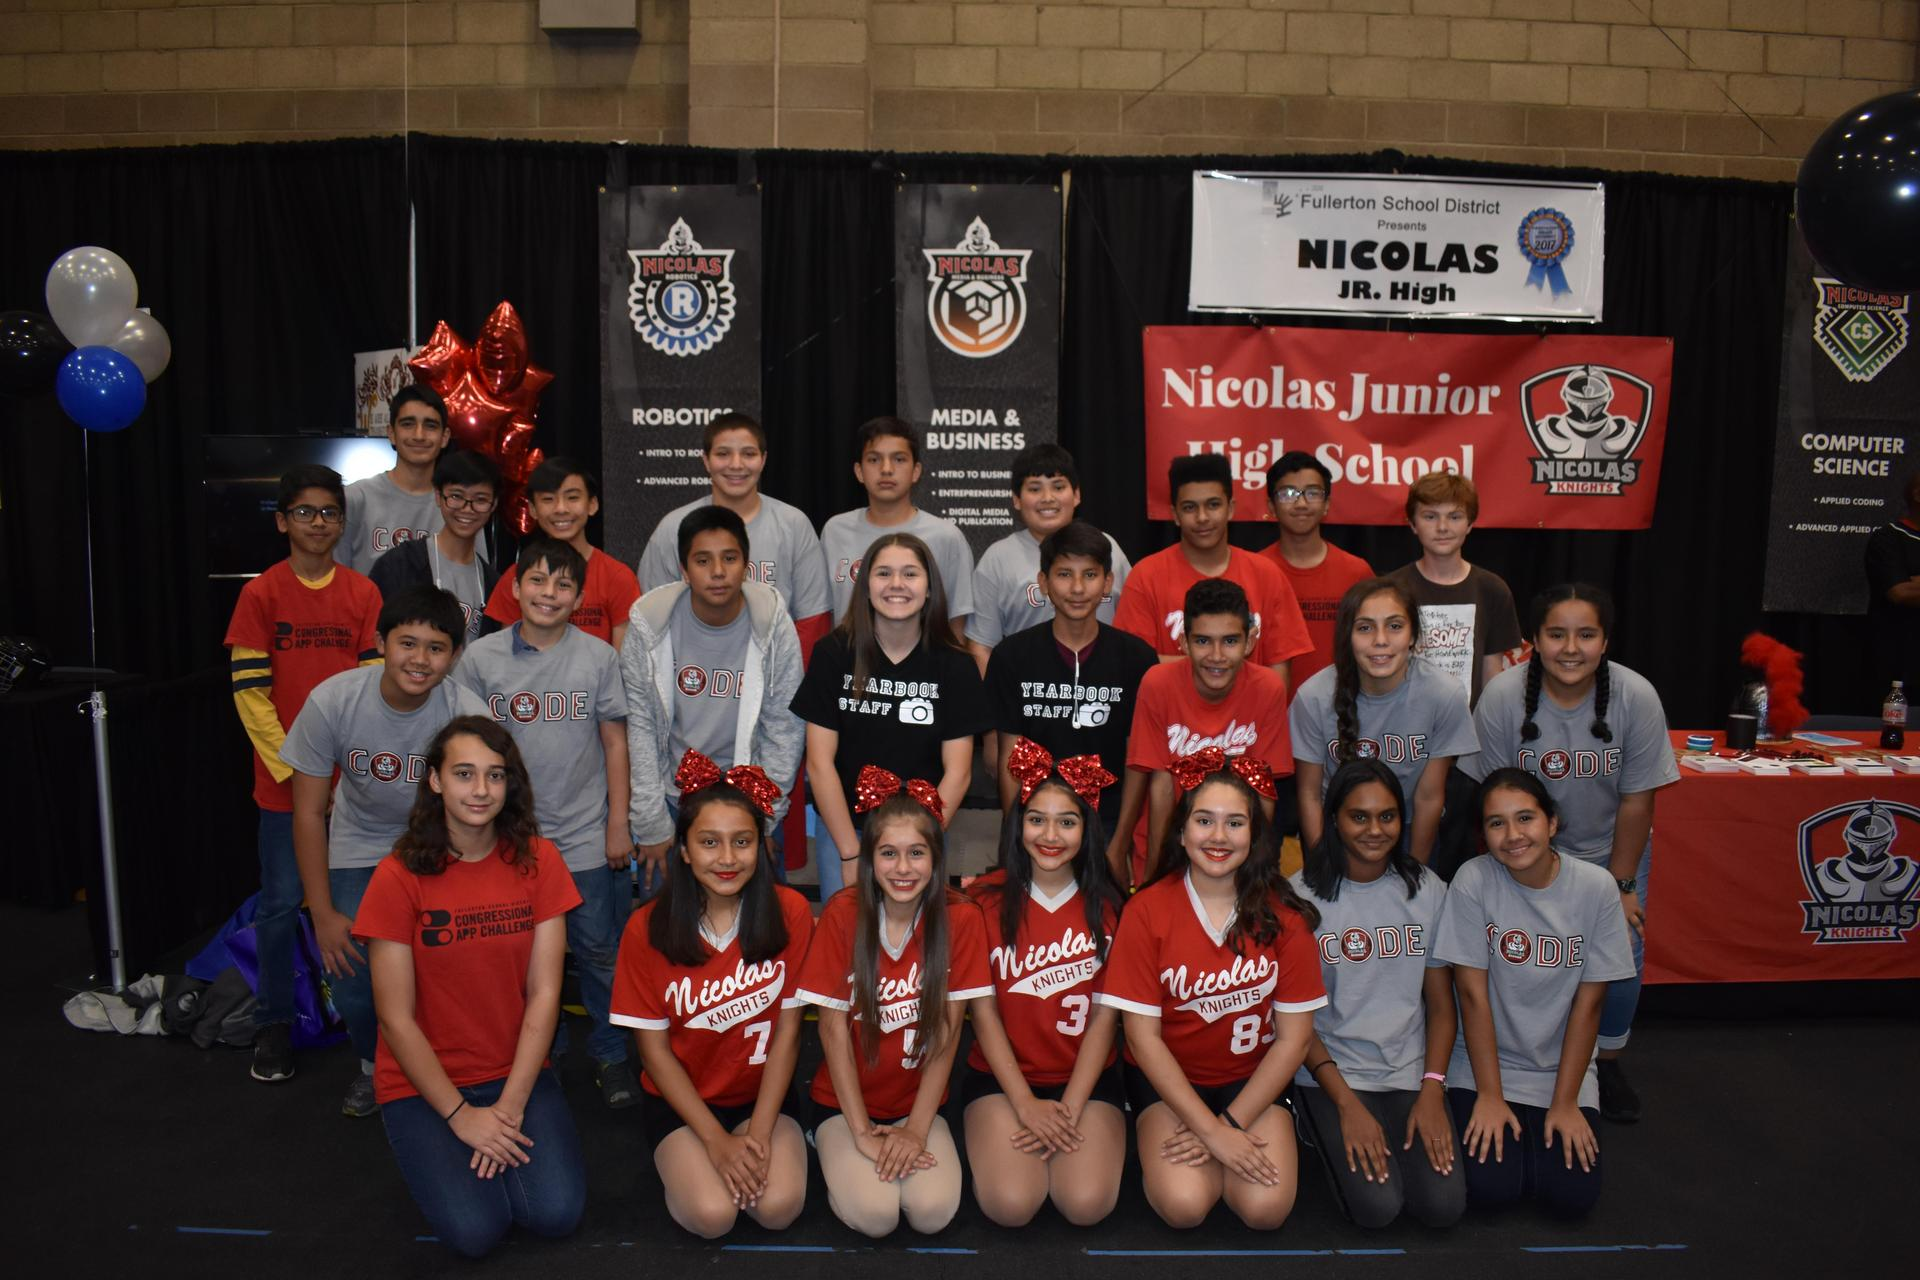 Nicolas students and staff